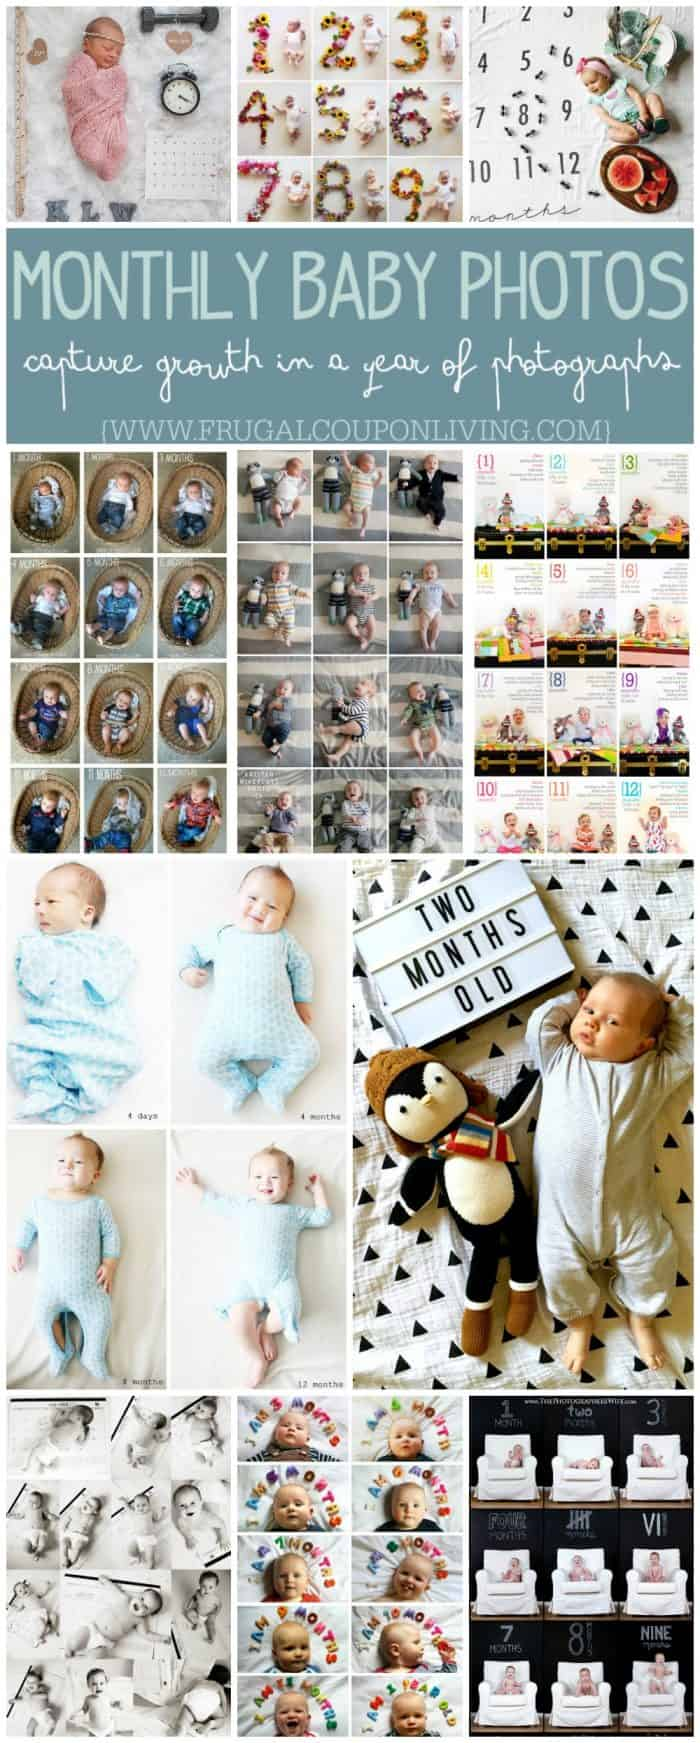 Monthly-Baby-Photo-Ideas-Frugal-Coupon-Living-long